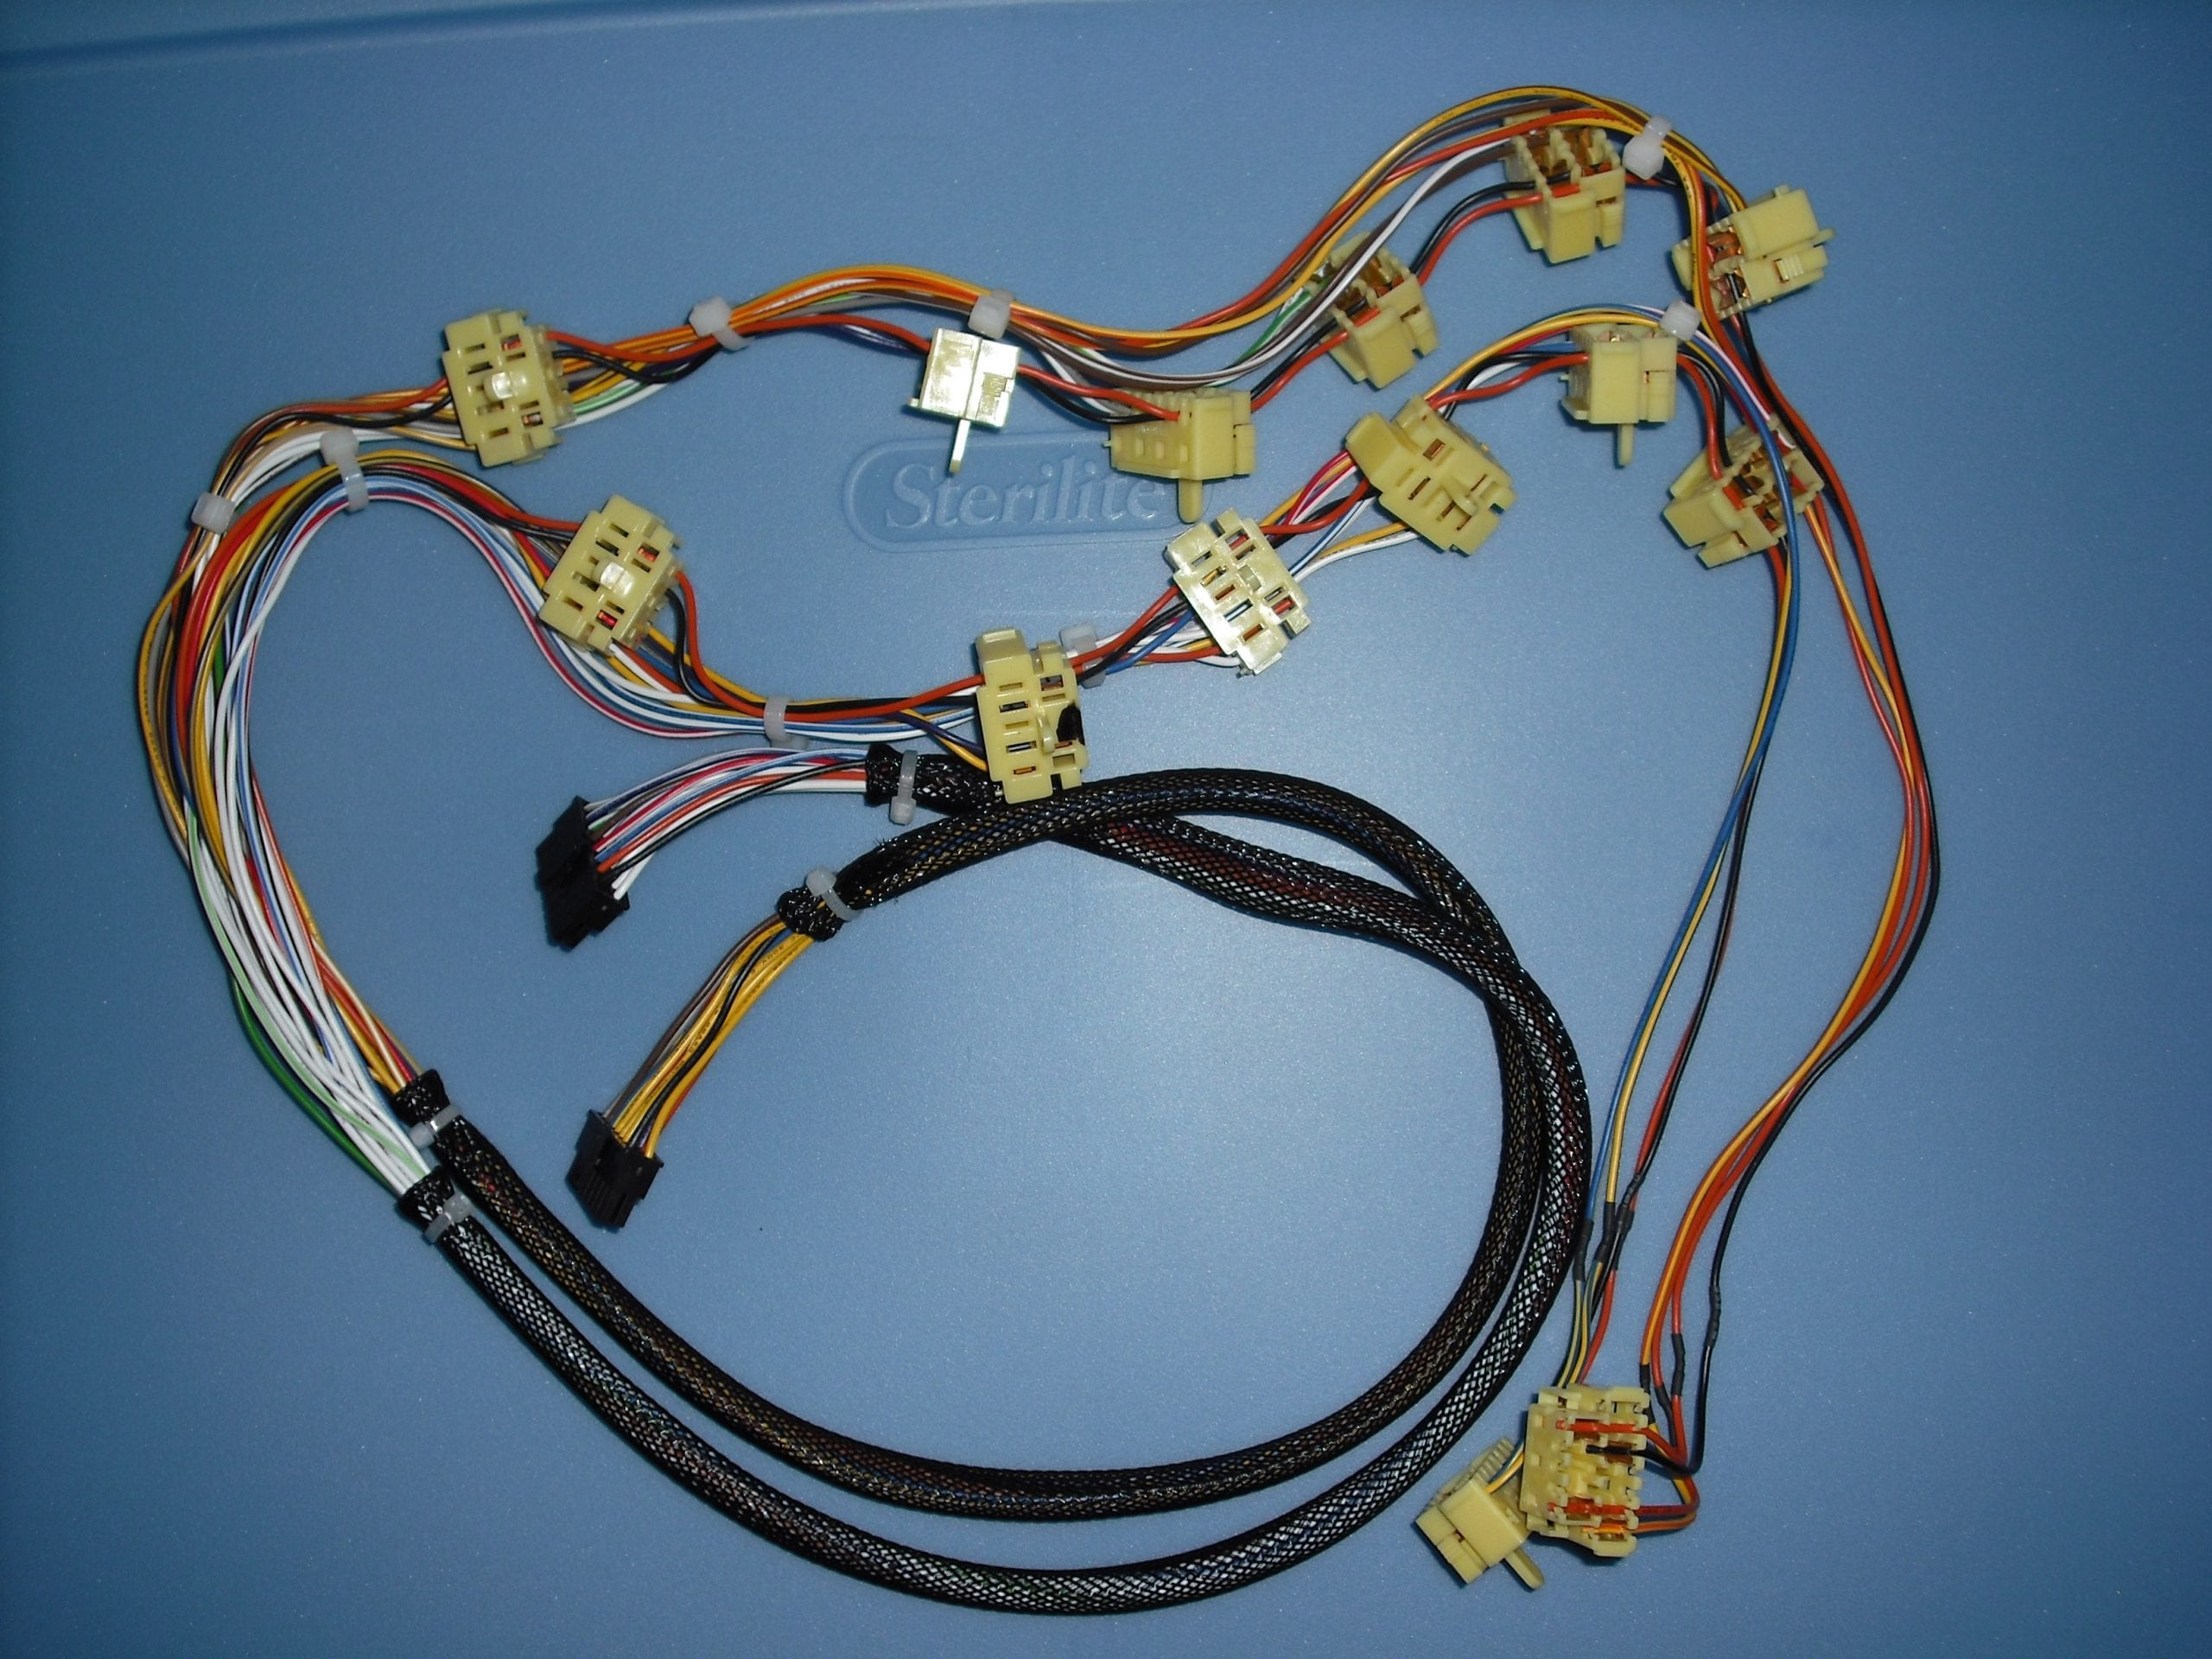 Winstronics Custom Wire Harness for Gaming Machines